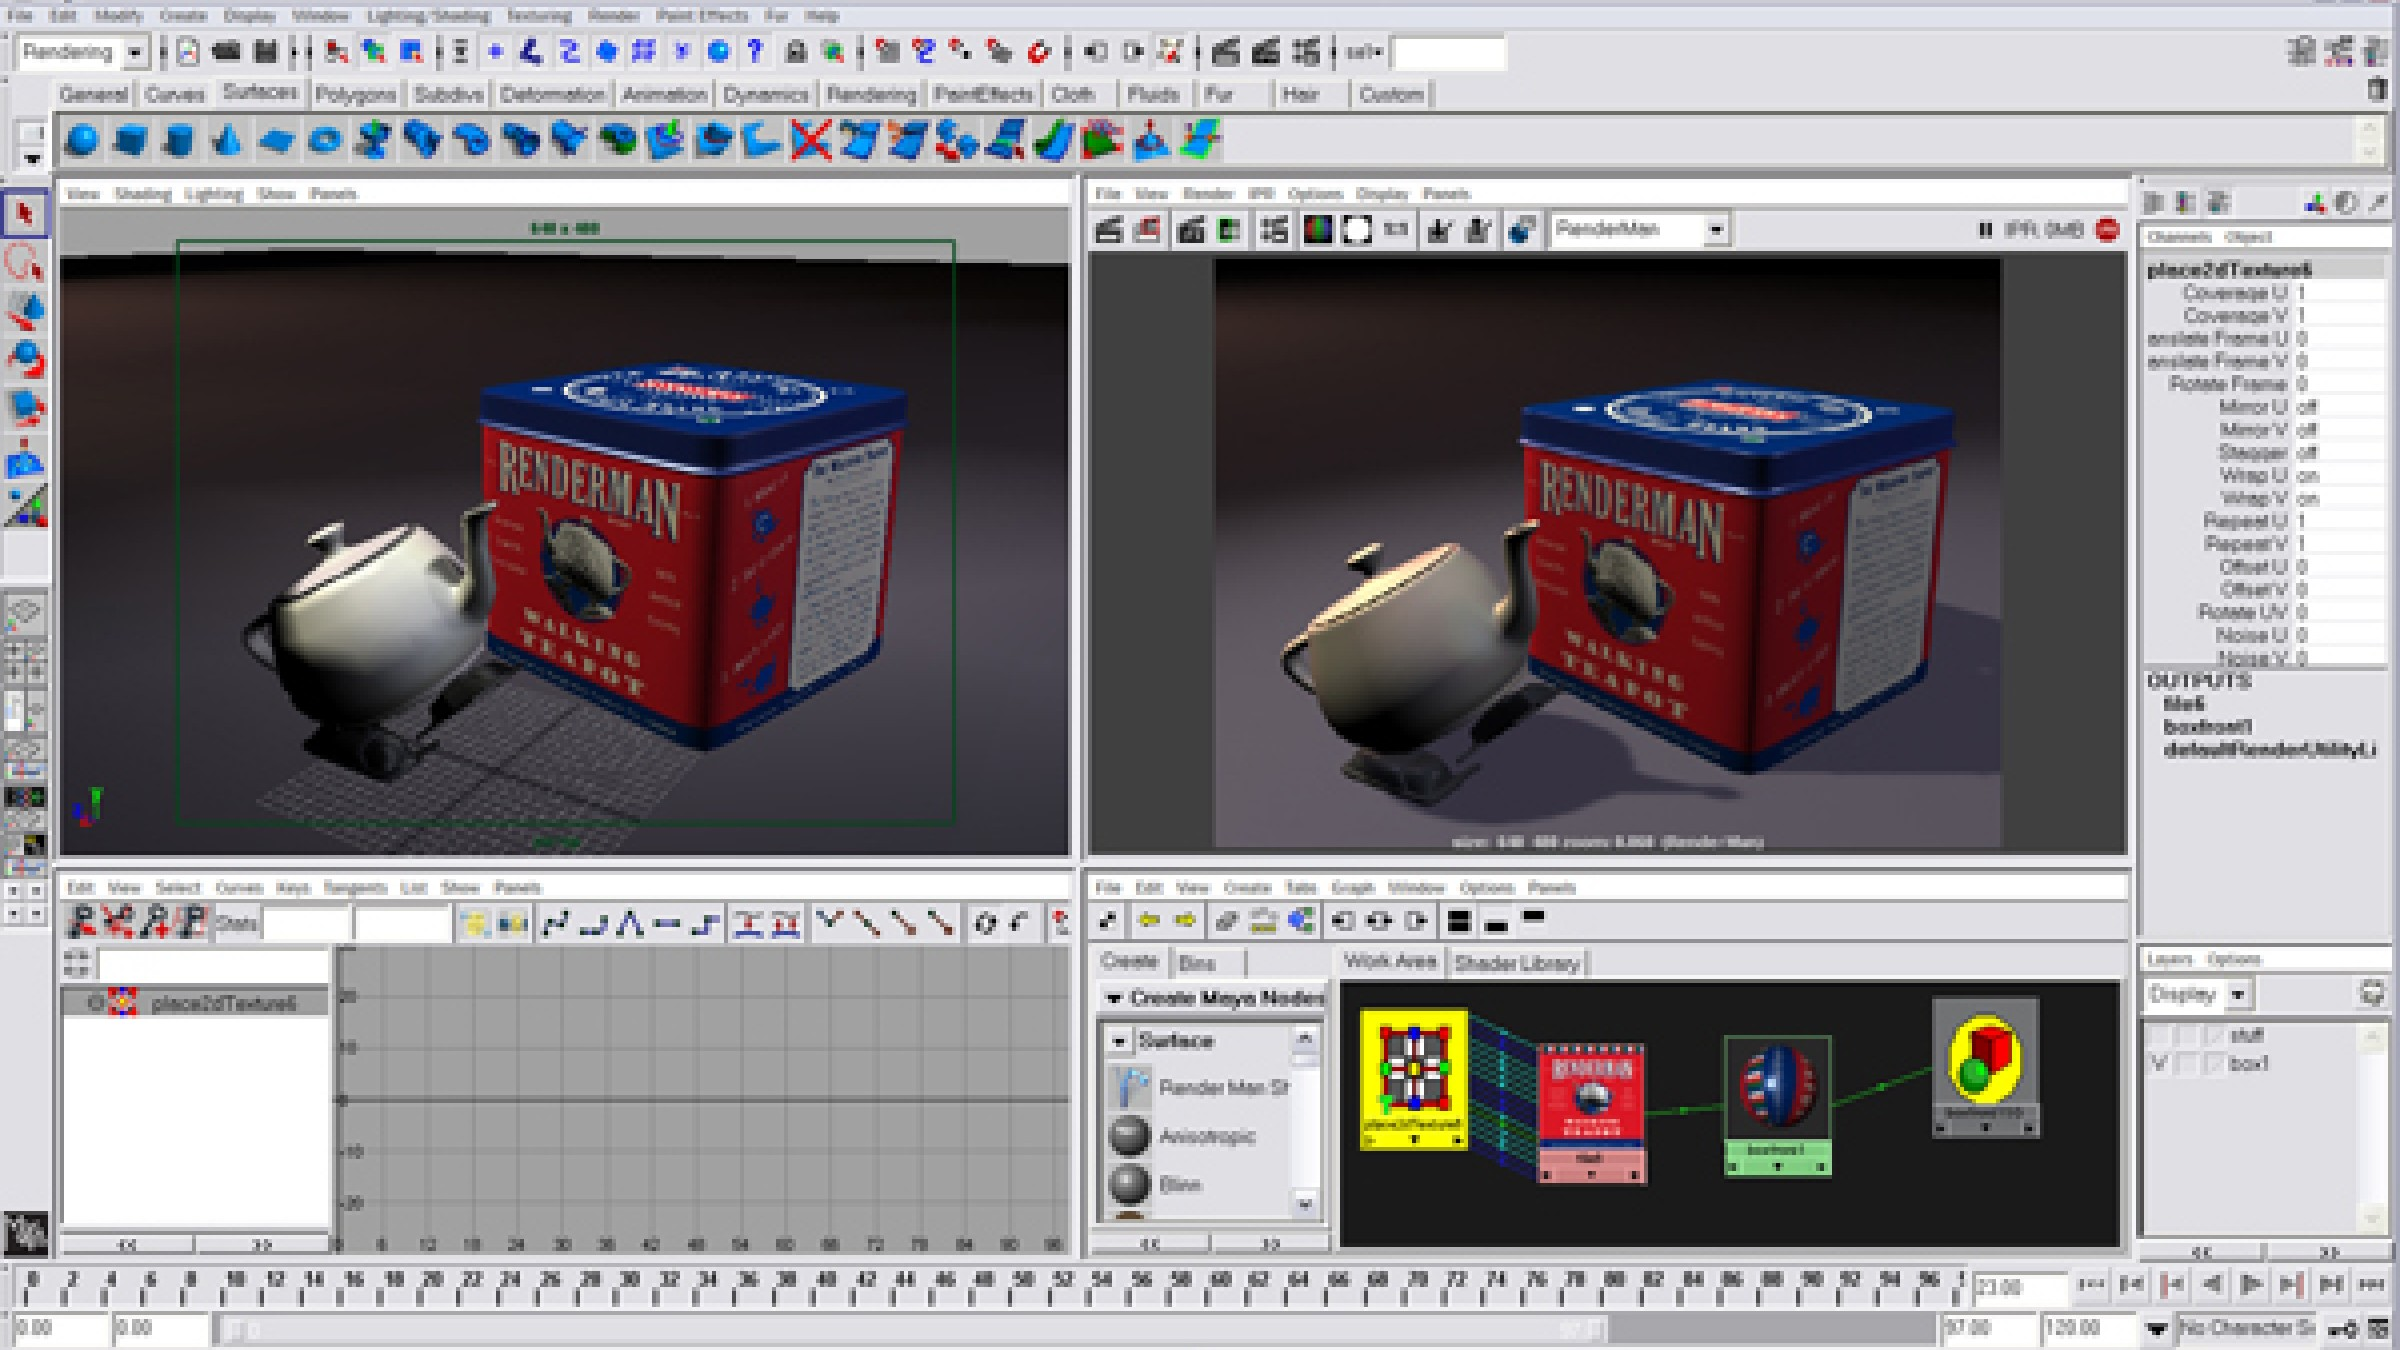 Hone Your VFX Skills for Free with the Non-Commercial Version of